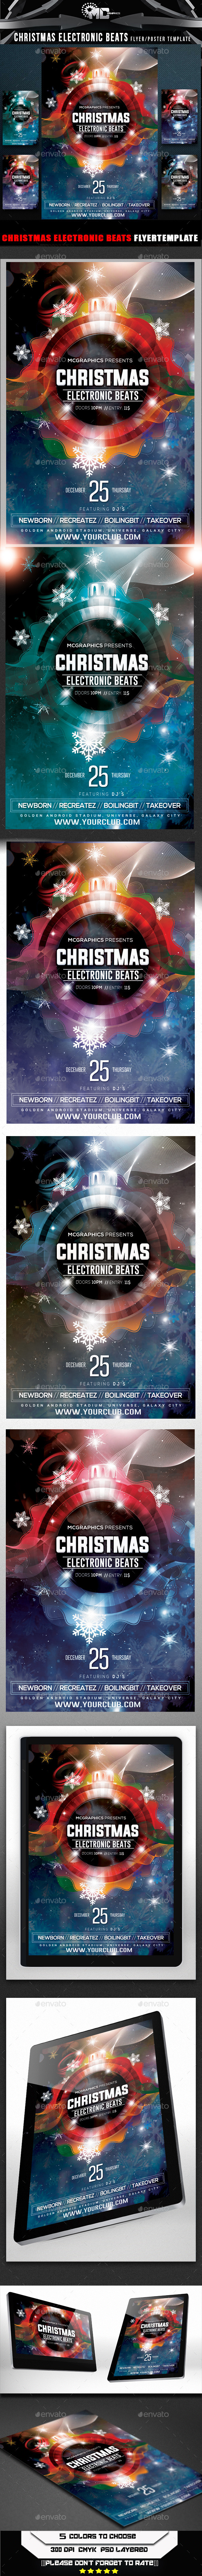 GraphicRiver Christmas Electronic Beats Flyer Template 9537045